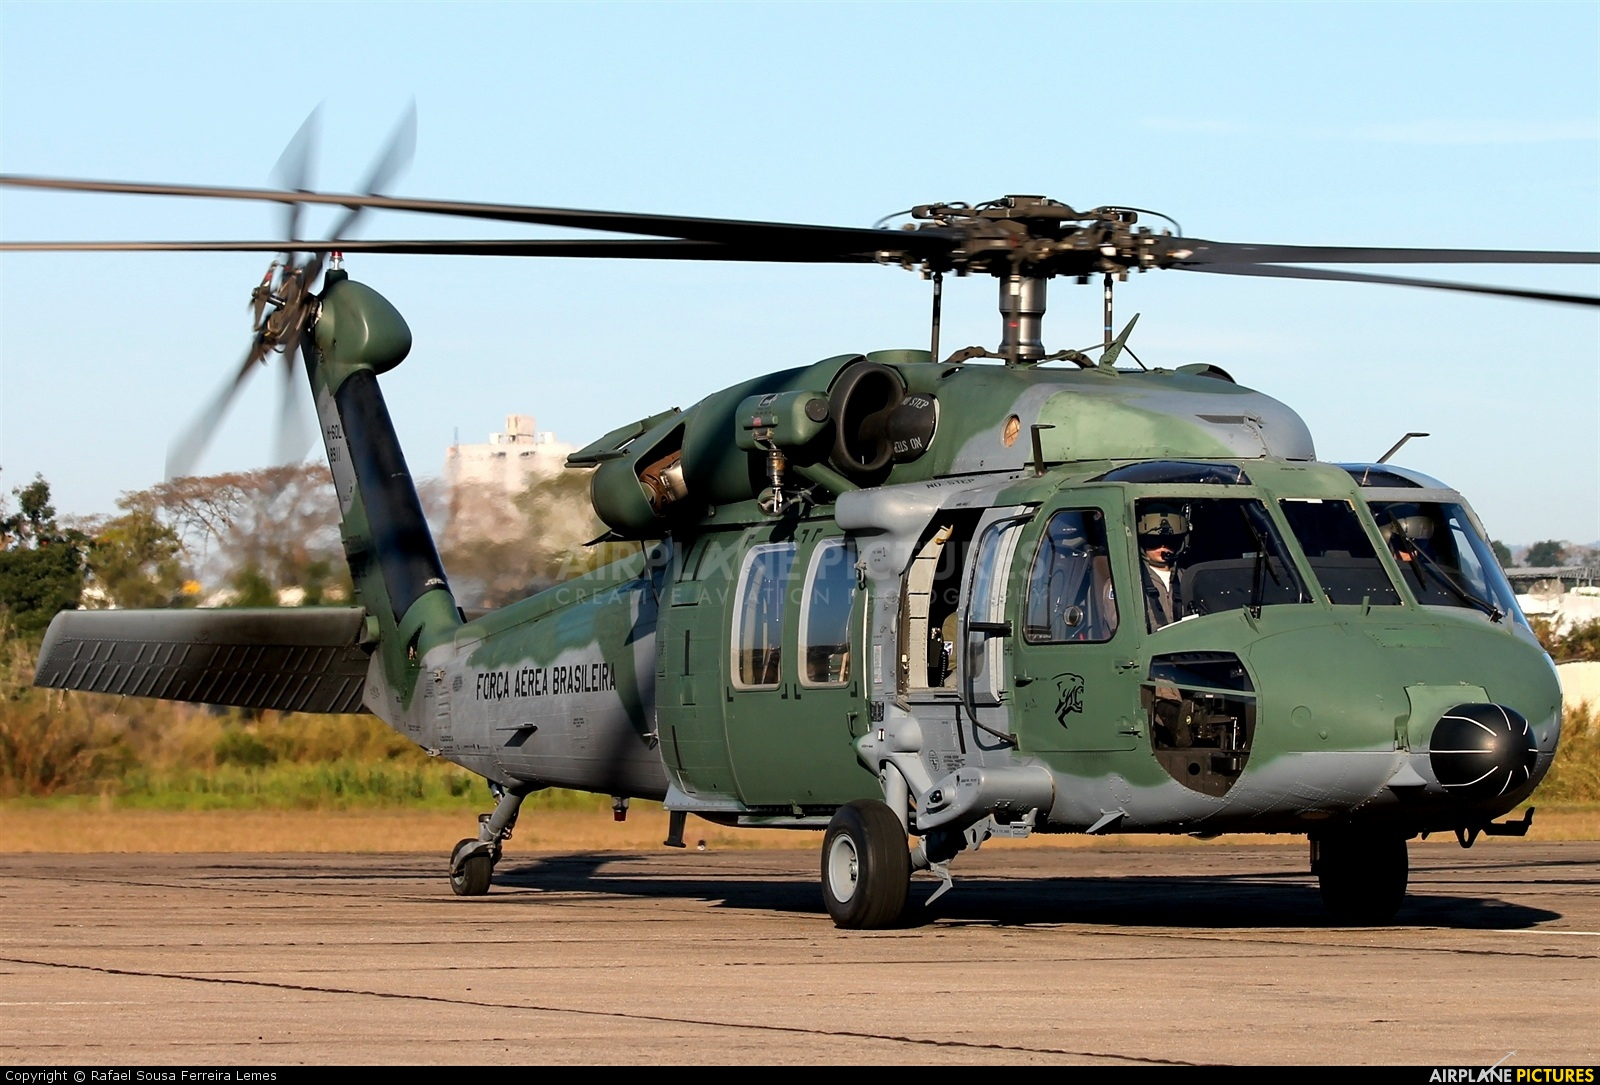 Brazil - Air Force 8911 aircraft at Guaratingueta